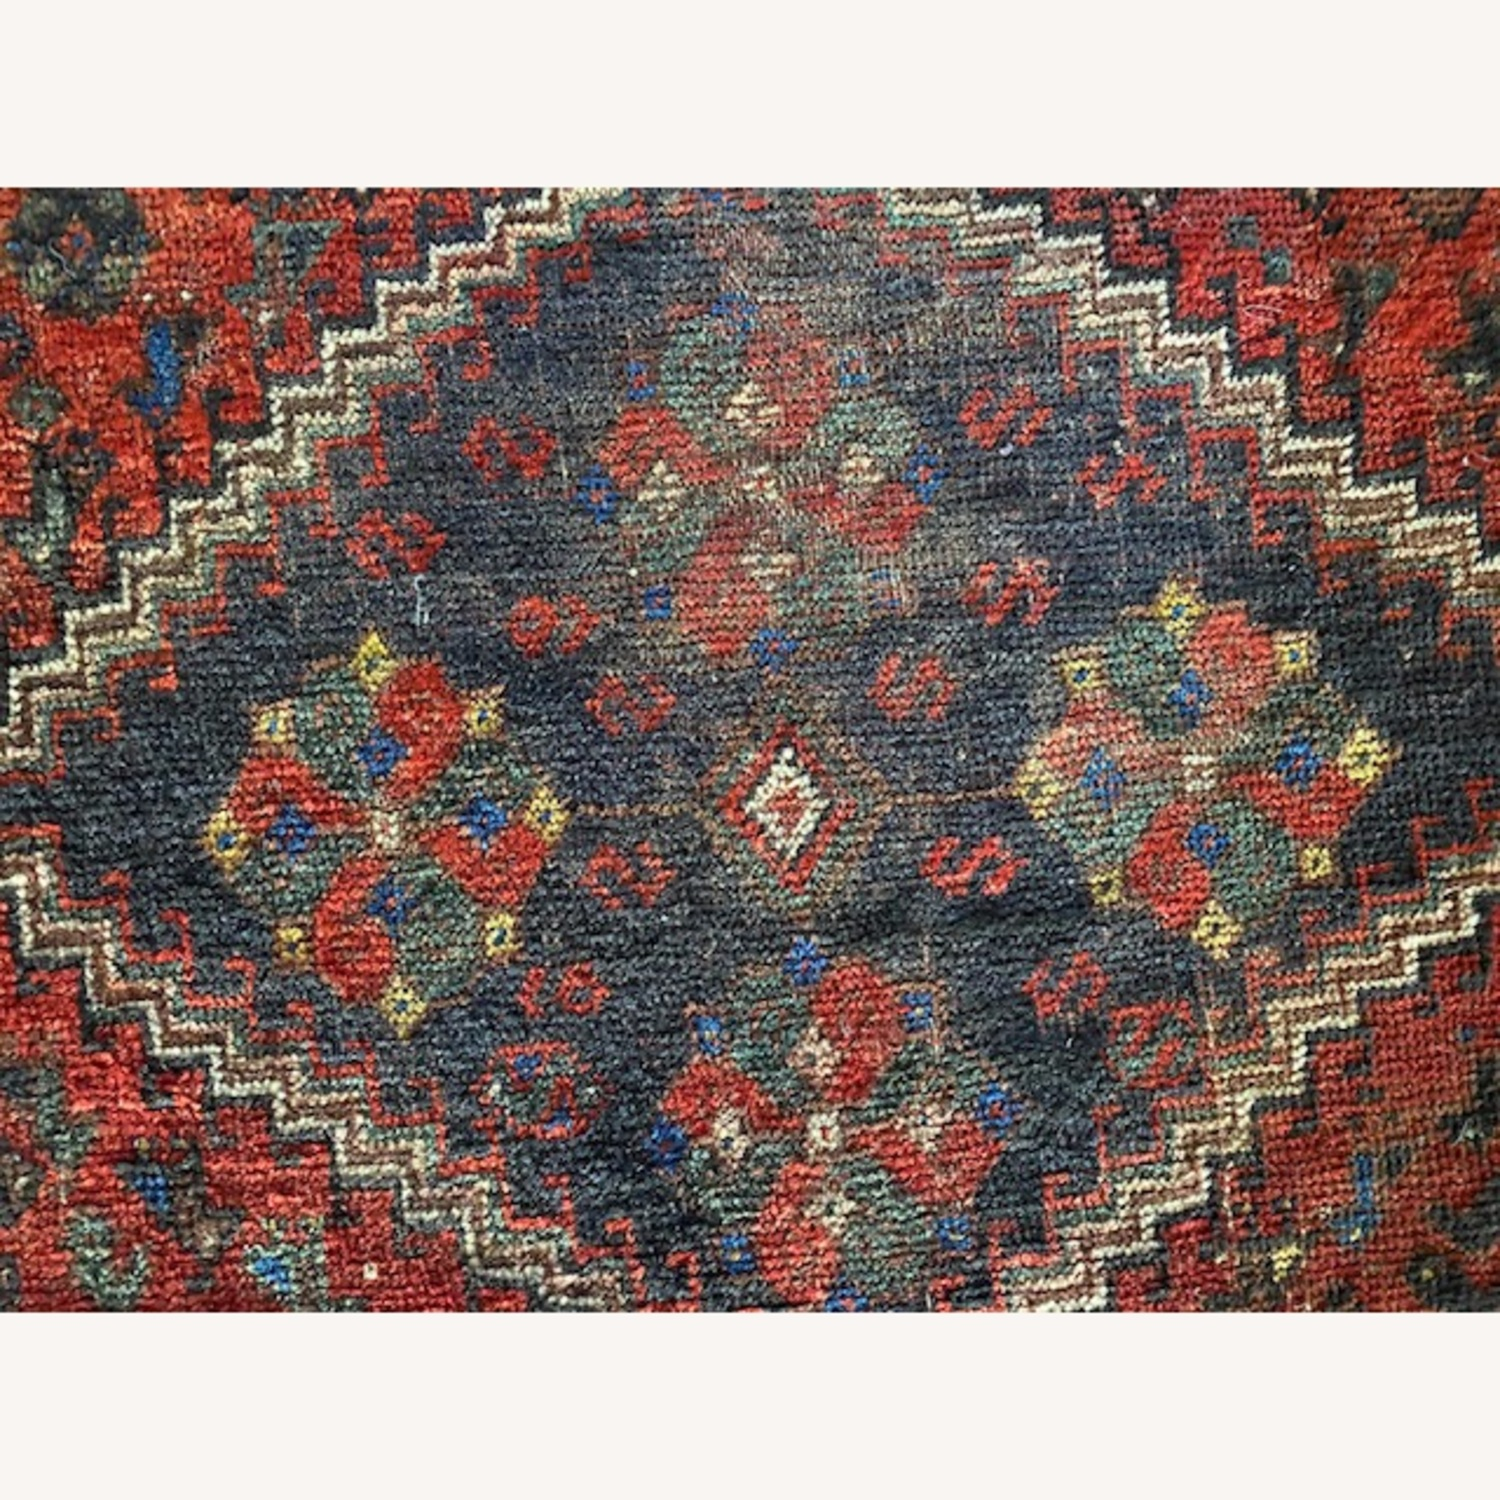 Vintage Persian Hand-knotted Wool Tribal Rug - image-2